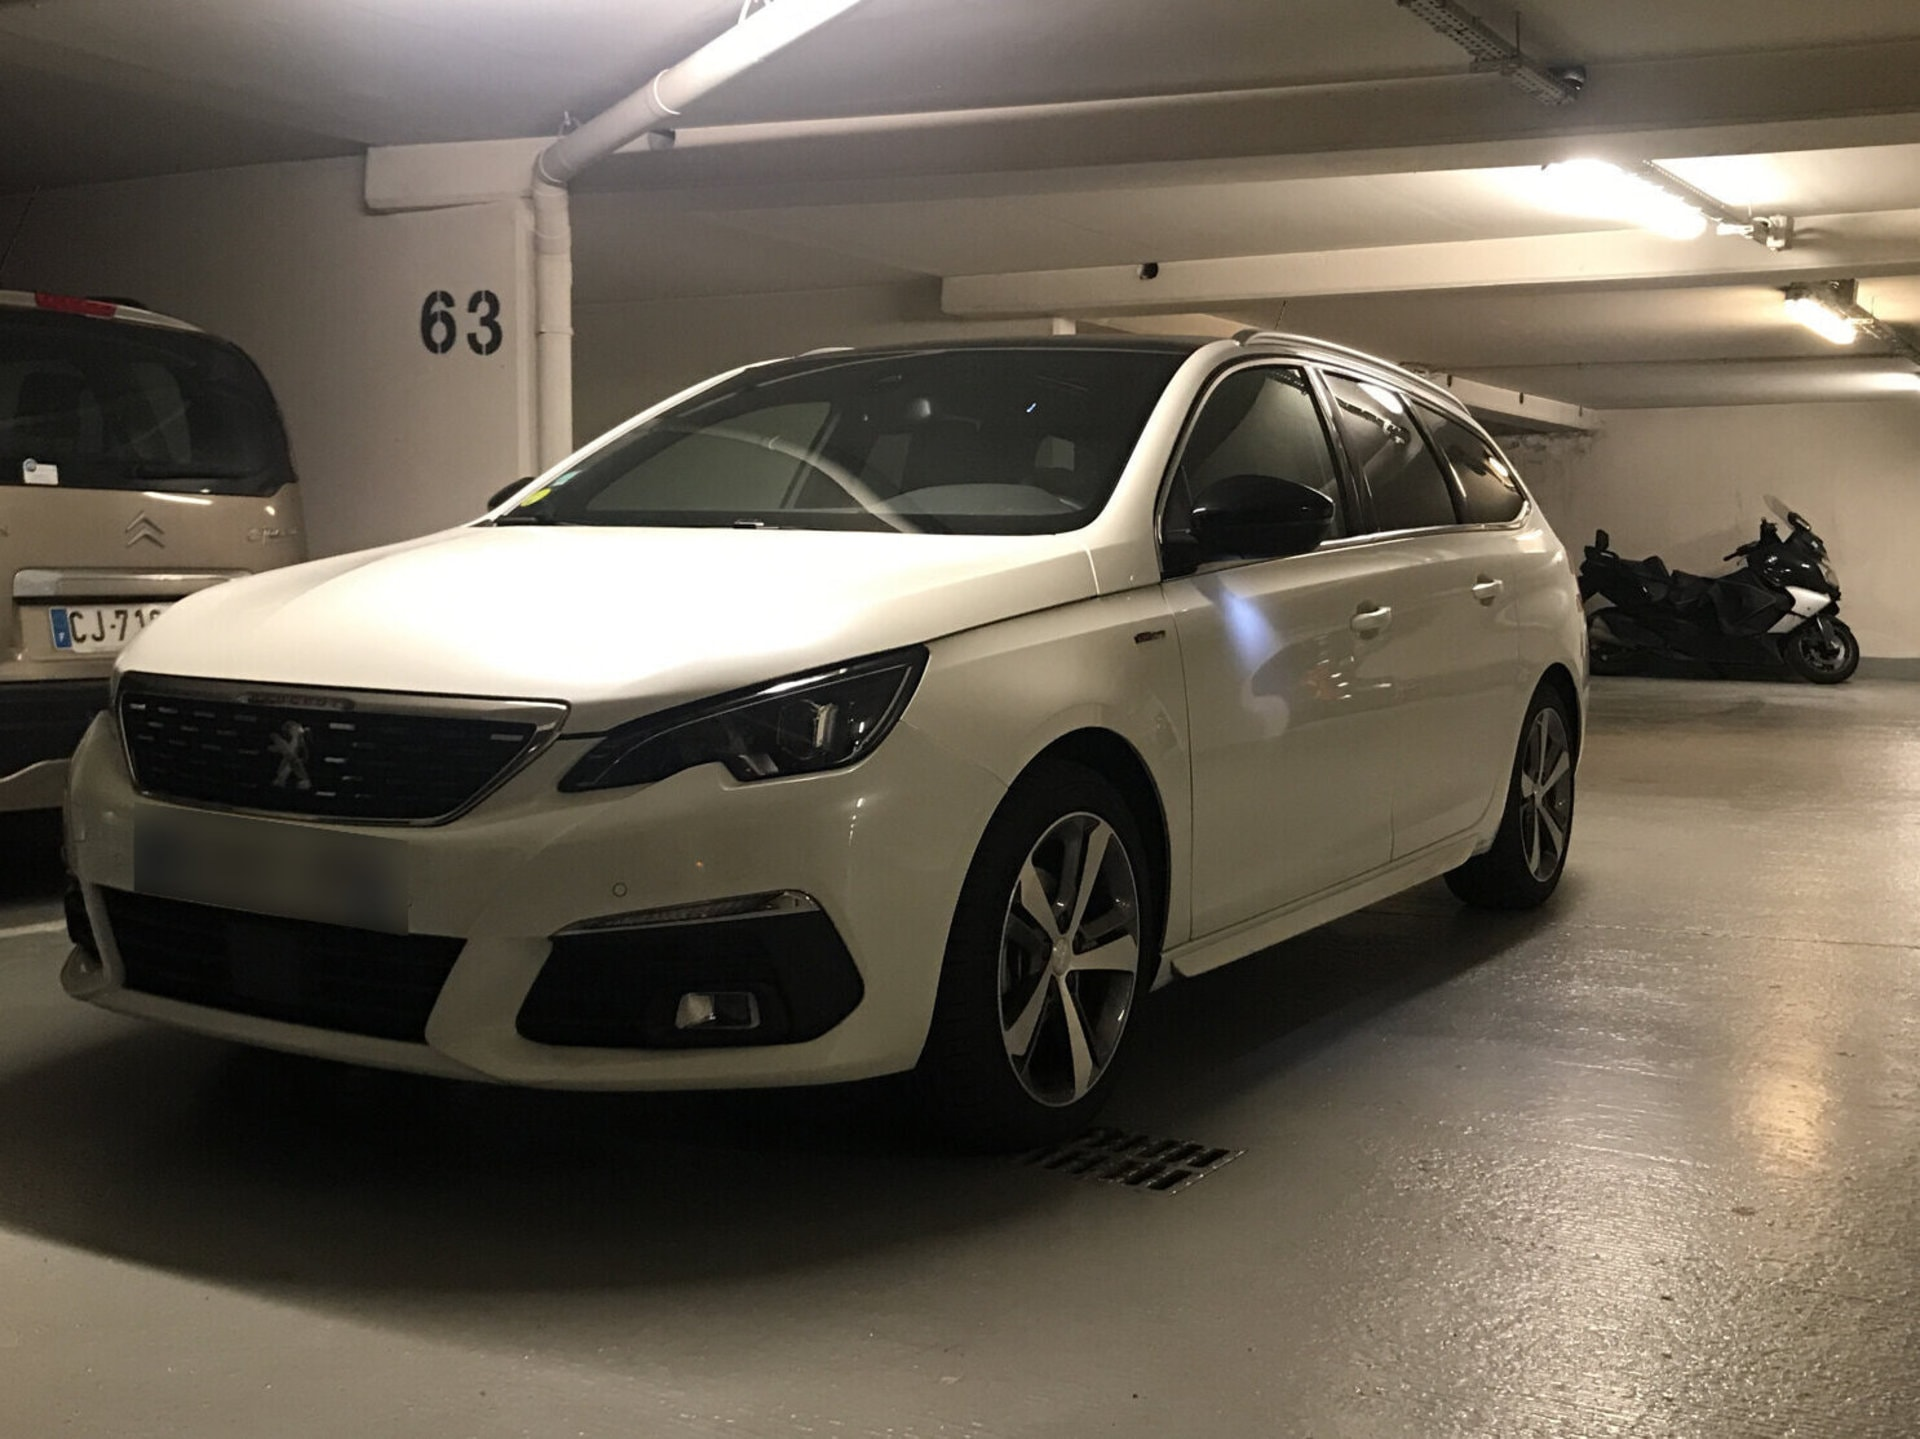 PEUGEOT 308 SW 1.5 BLUEHDI 130 GT LINE EAT BVA START-STOP - Carventura